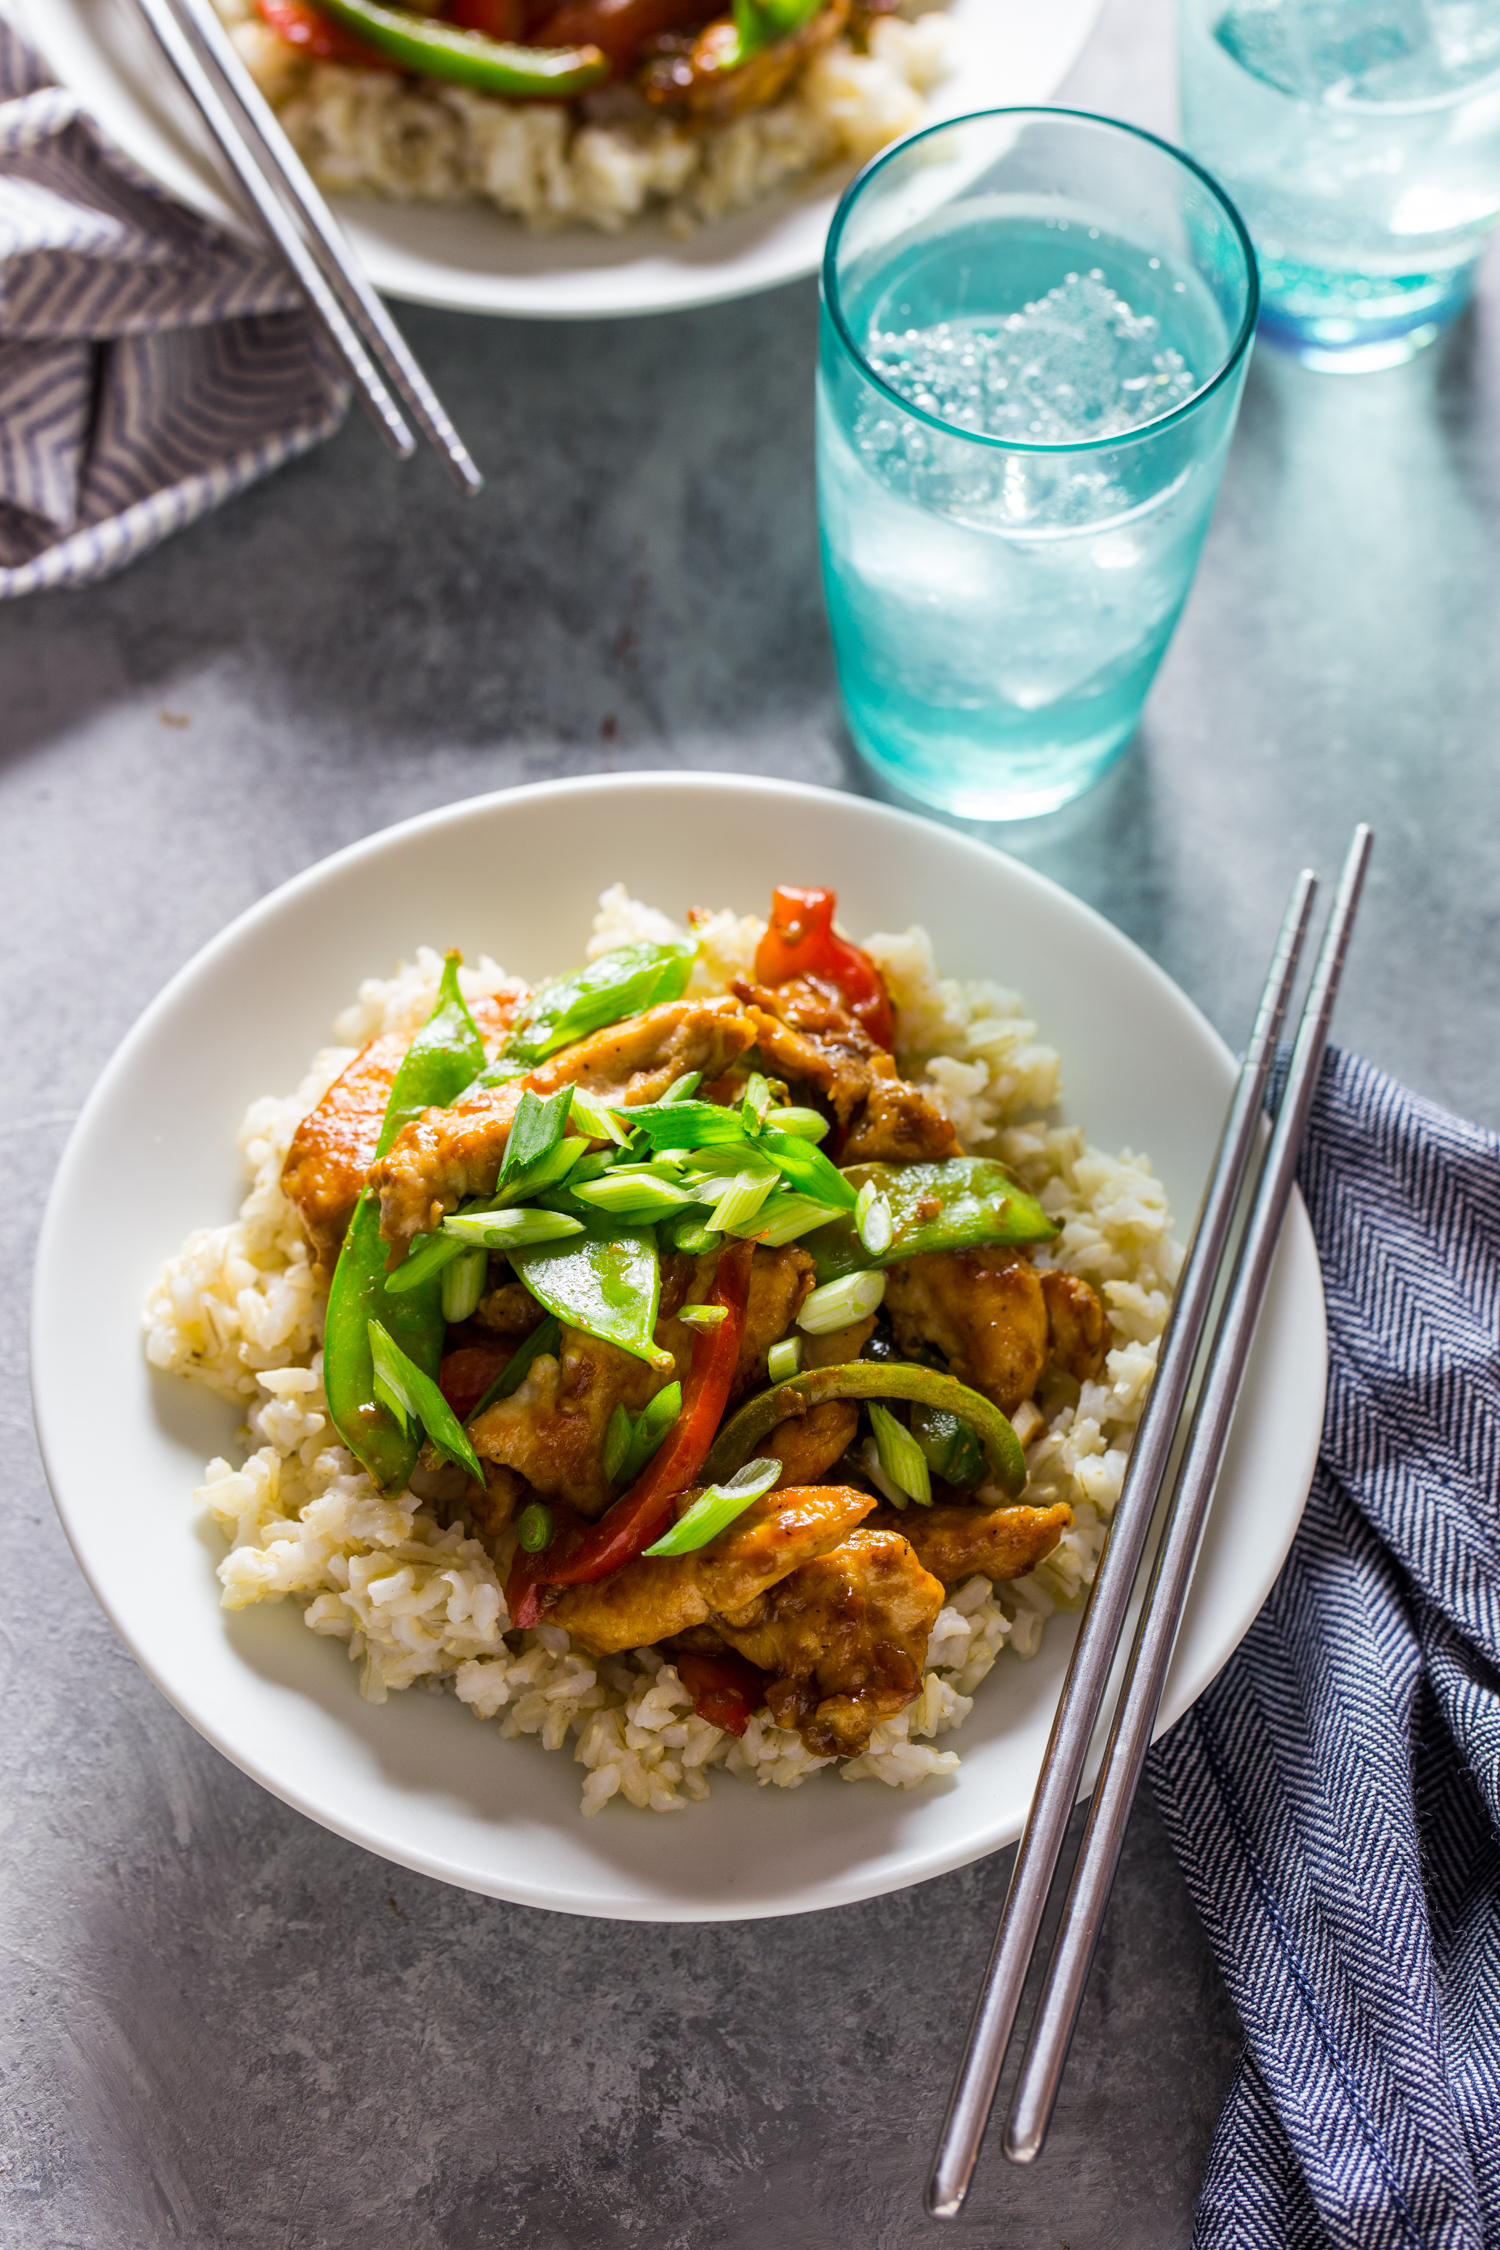 Quick and easy, Ginger Chicken Stir Fry for a busy weeknight.